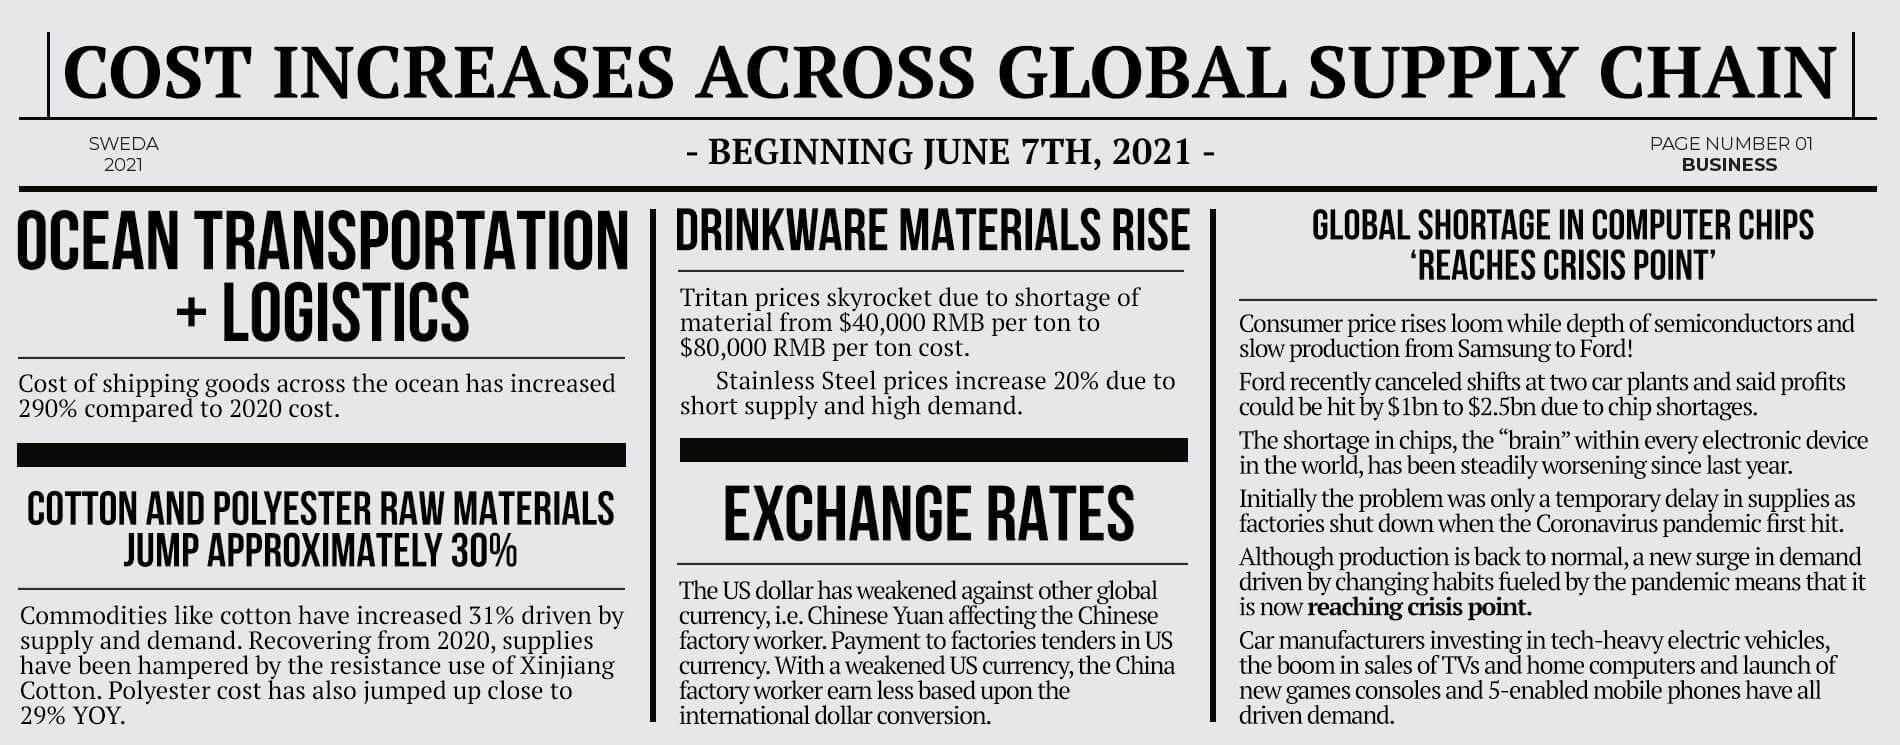 Cost Increases Across Global Supply Chain